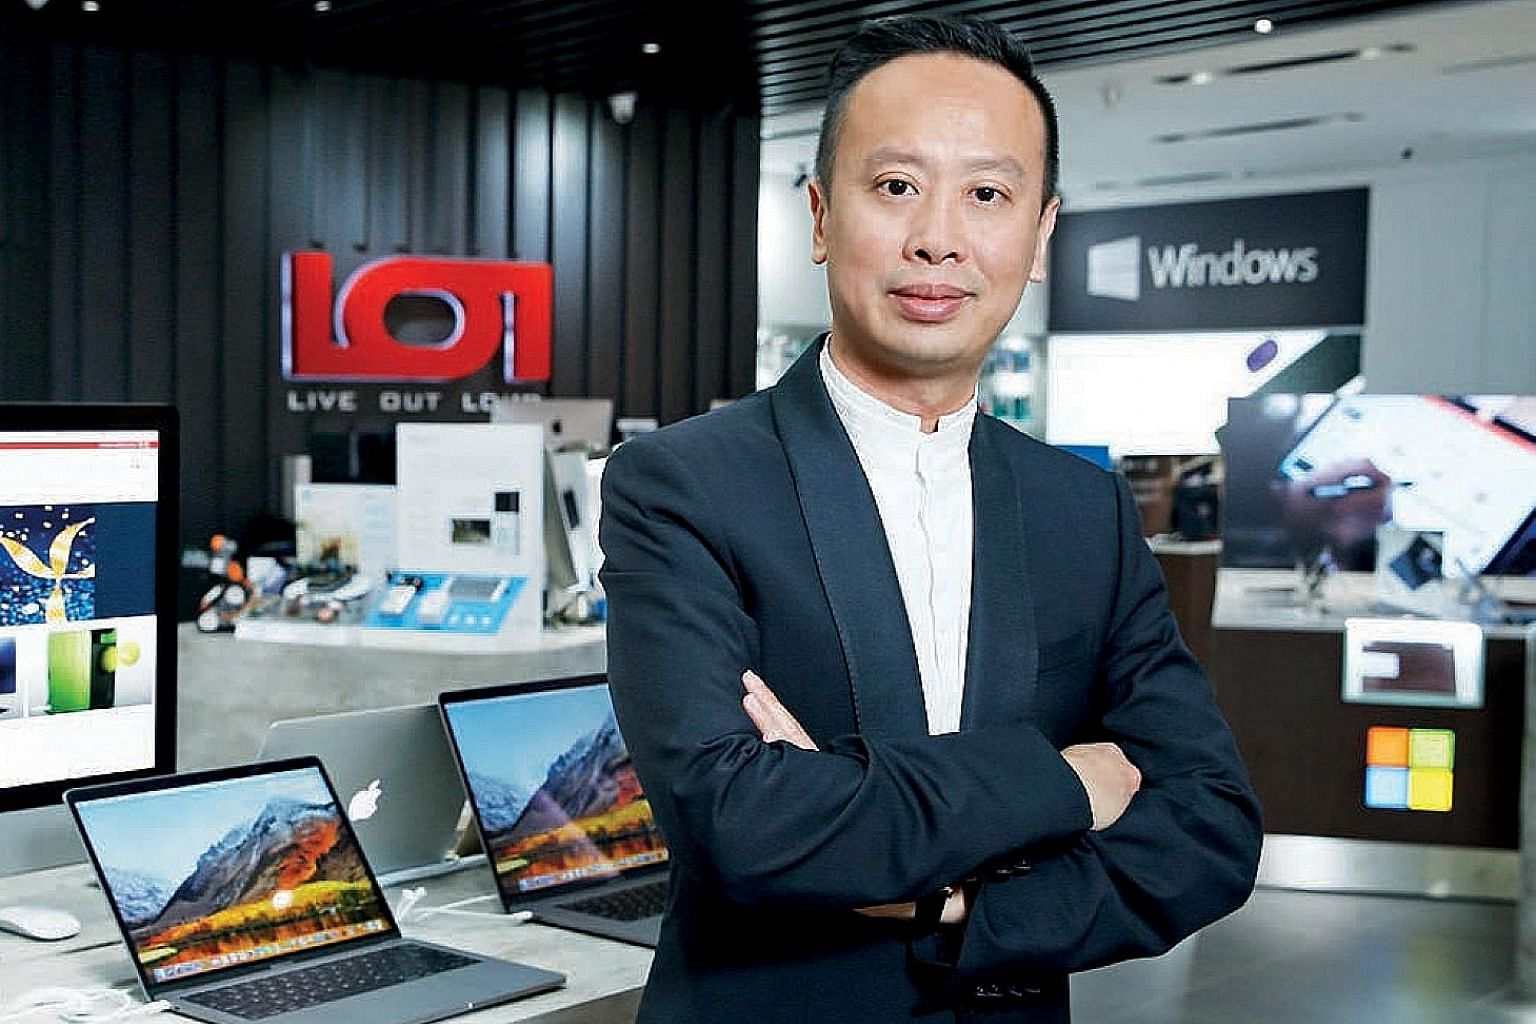 Epicentre Holdings executive chairman and acting chief executive officer Kenneth Lim Tiong Hian has been uncontactable since May 24, the company said on Thursday. In the absence of Mr Lim, the company remains under the leadership of the independent d